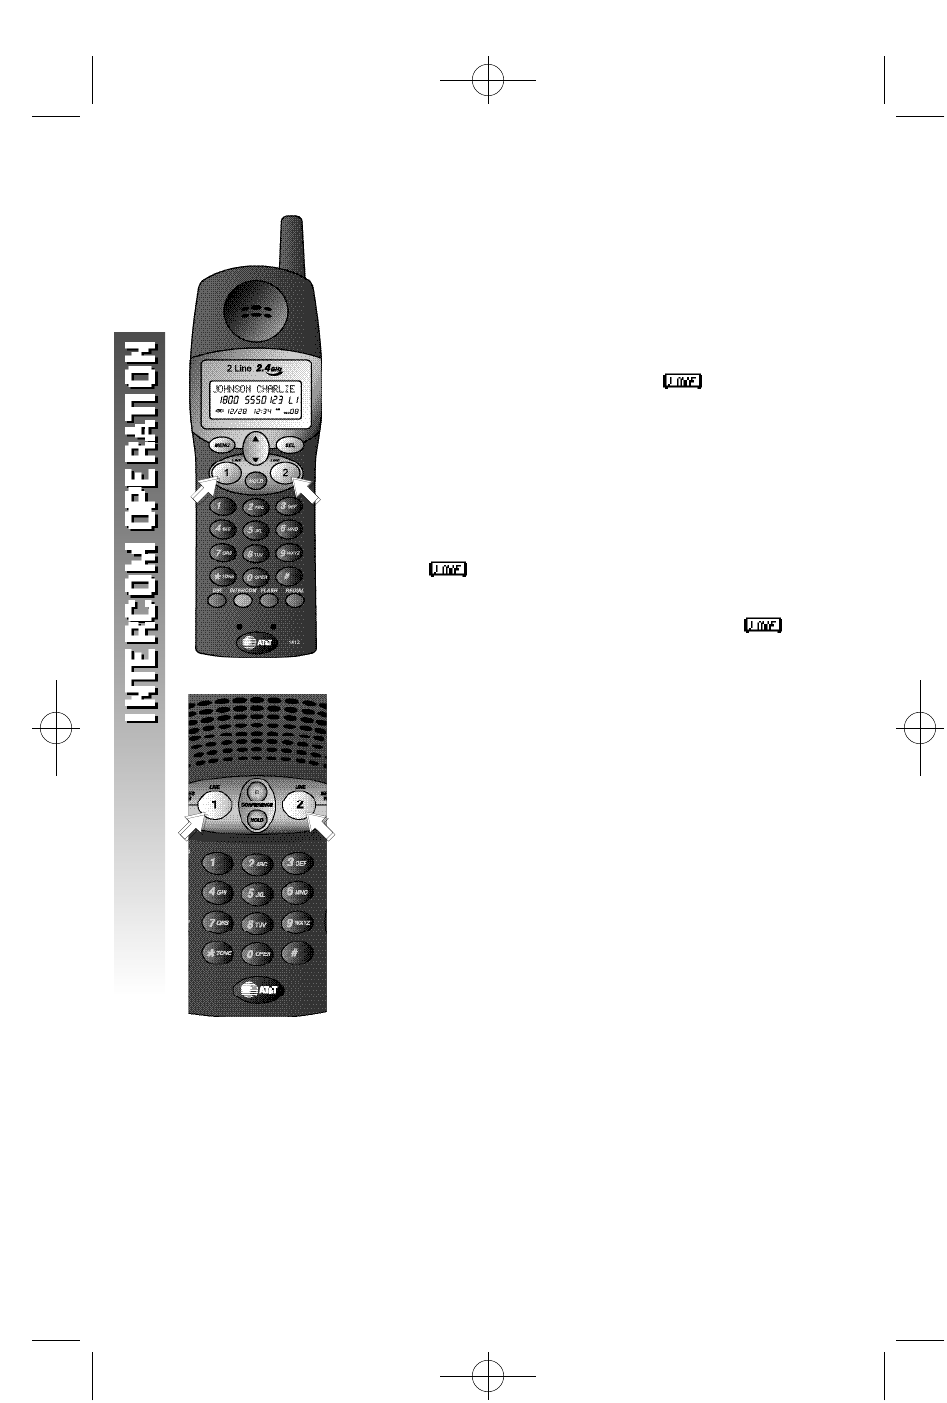 Page 33 of AT&T Cordless Telephone 1412 User Guide